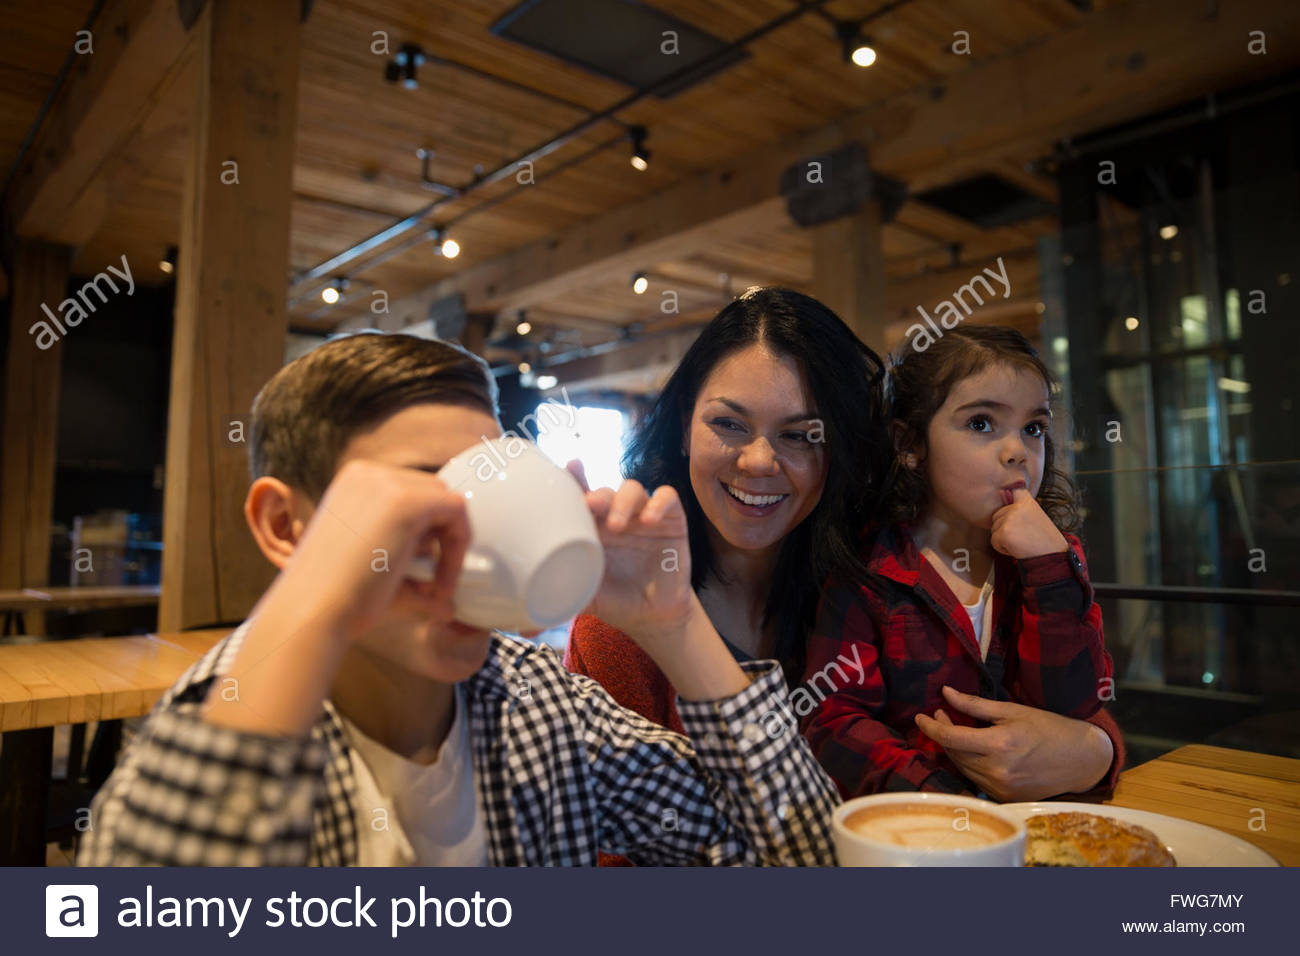 Smiling mother watching son drinking coffee in bakery Stock Photo